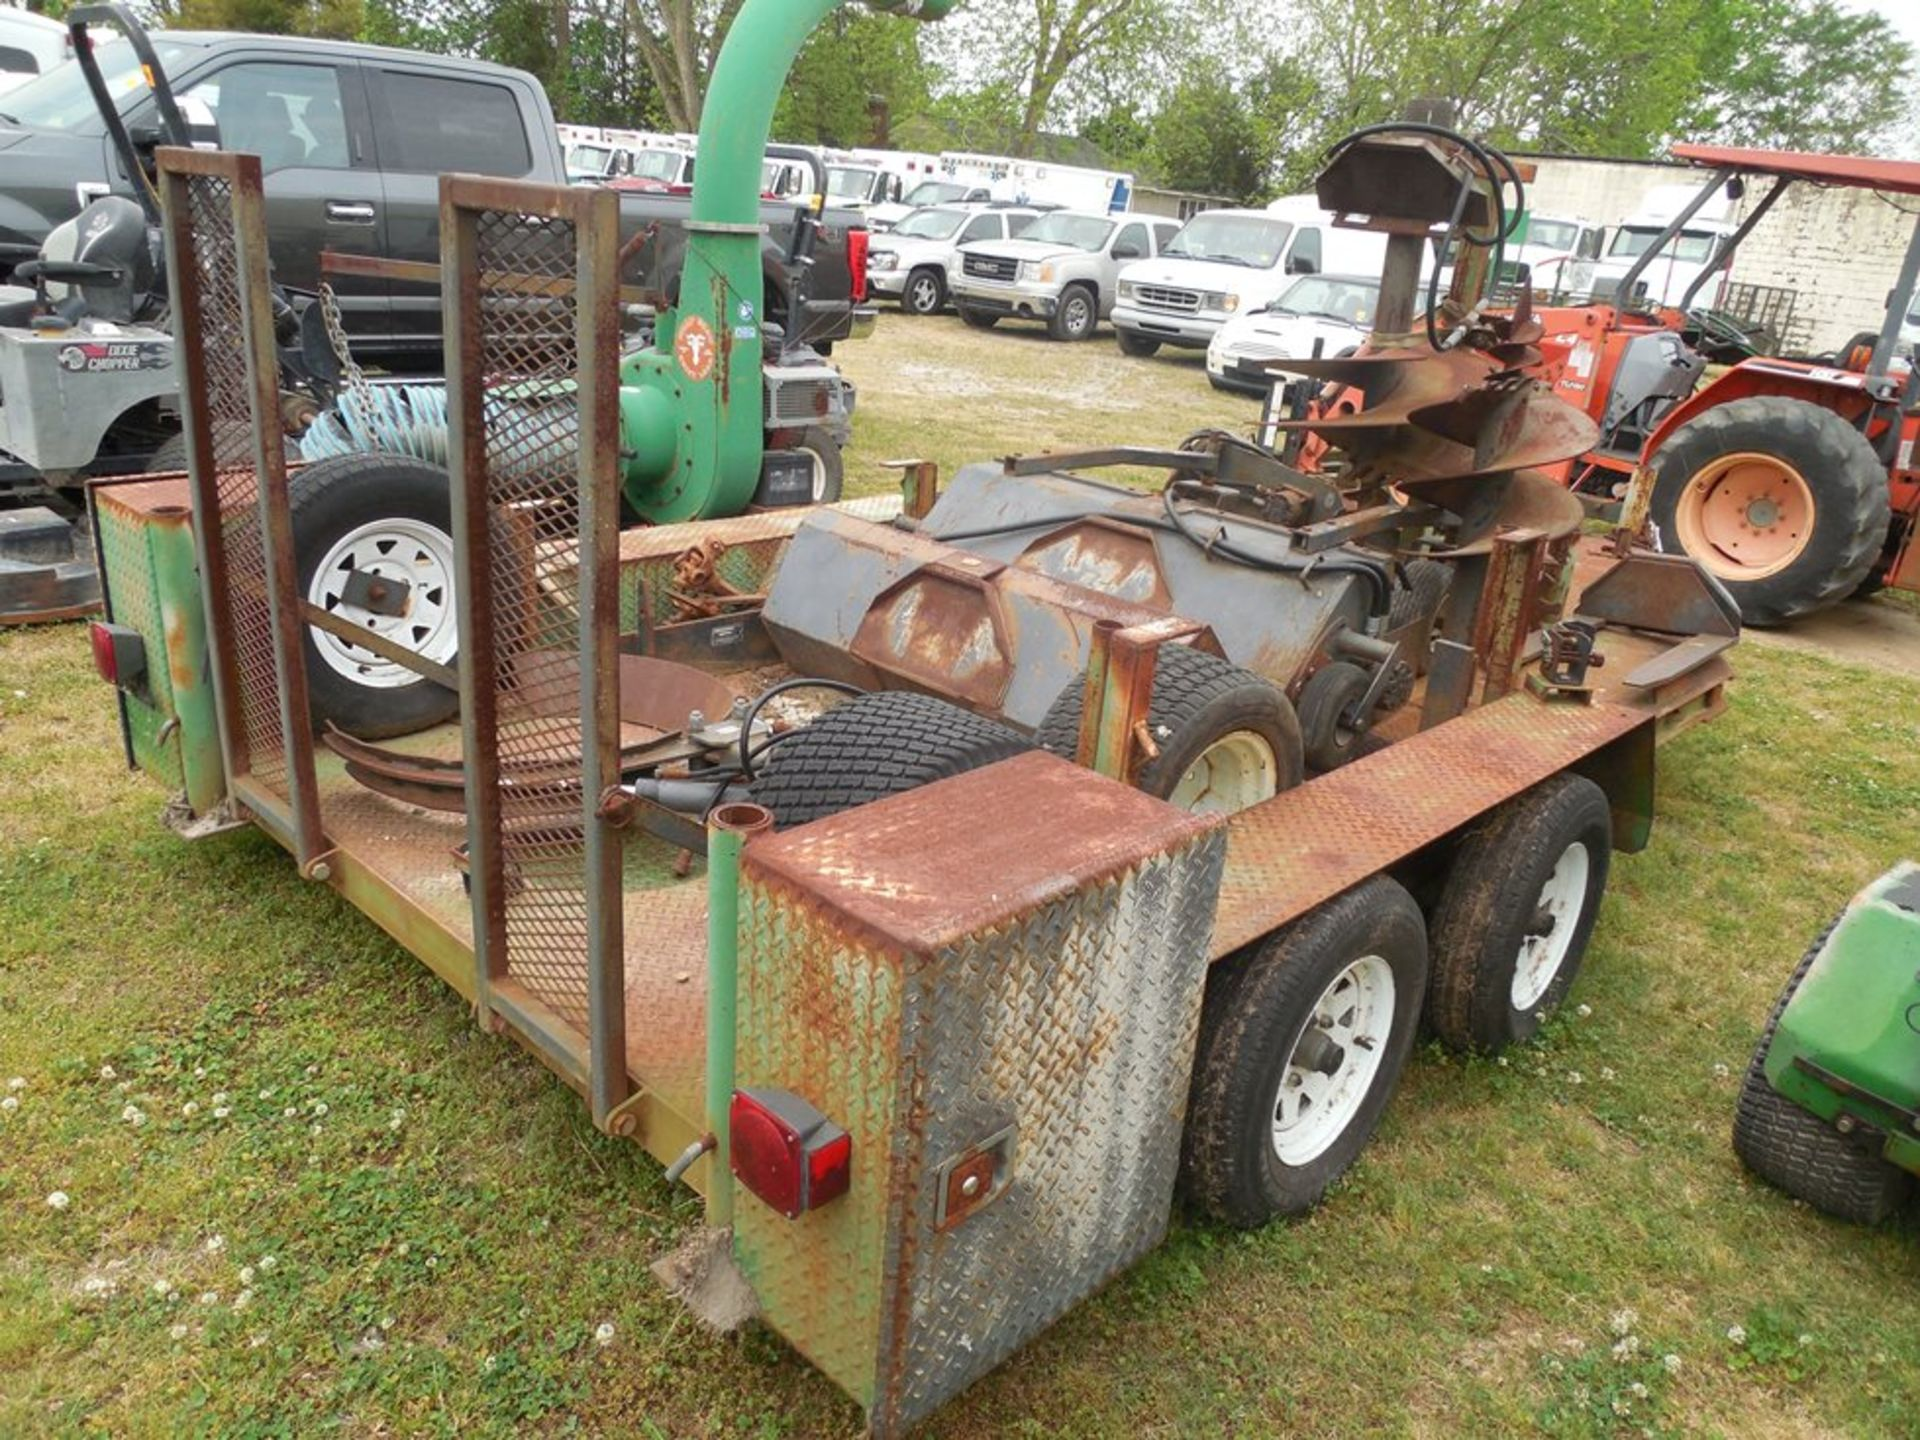 Power Trac PT-2425 Mini Skid Steer ser# 18928 with trailer, power rake, tree spade, front bucket, - Image 9 of 13